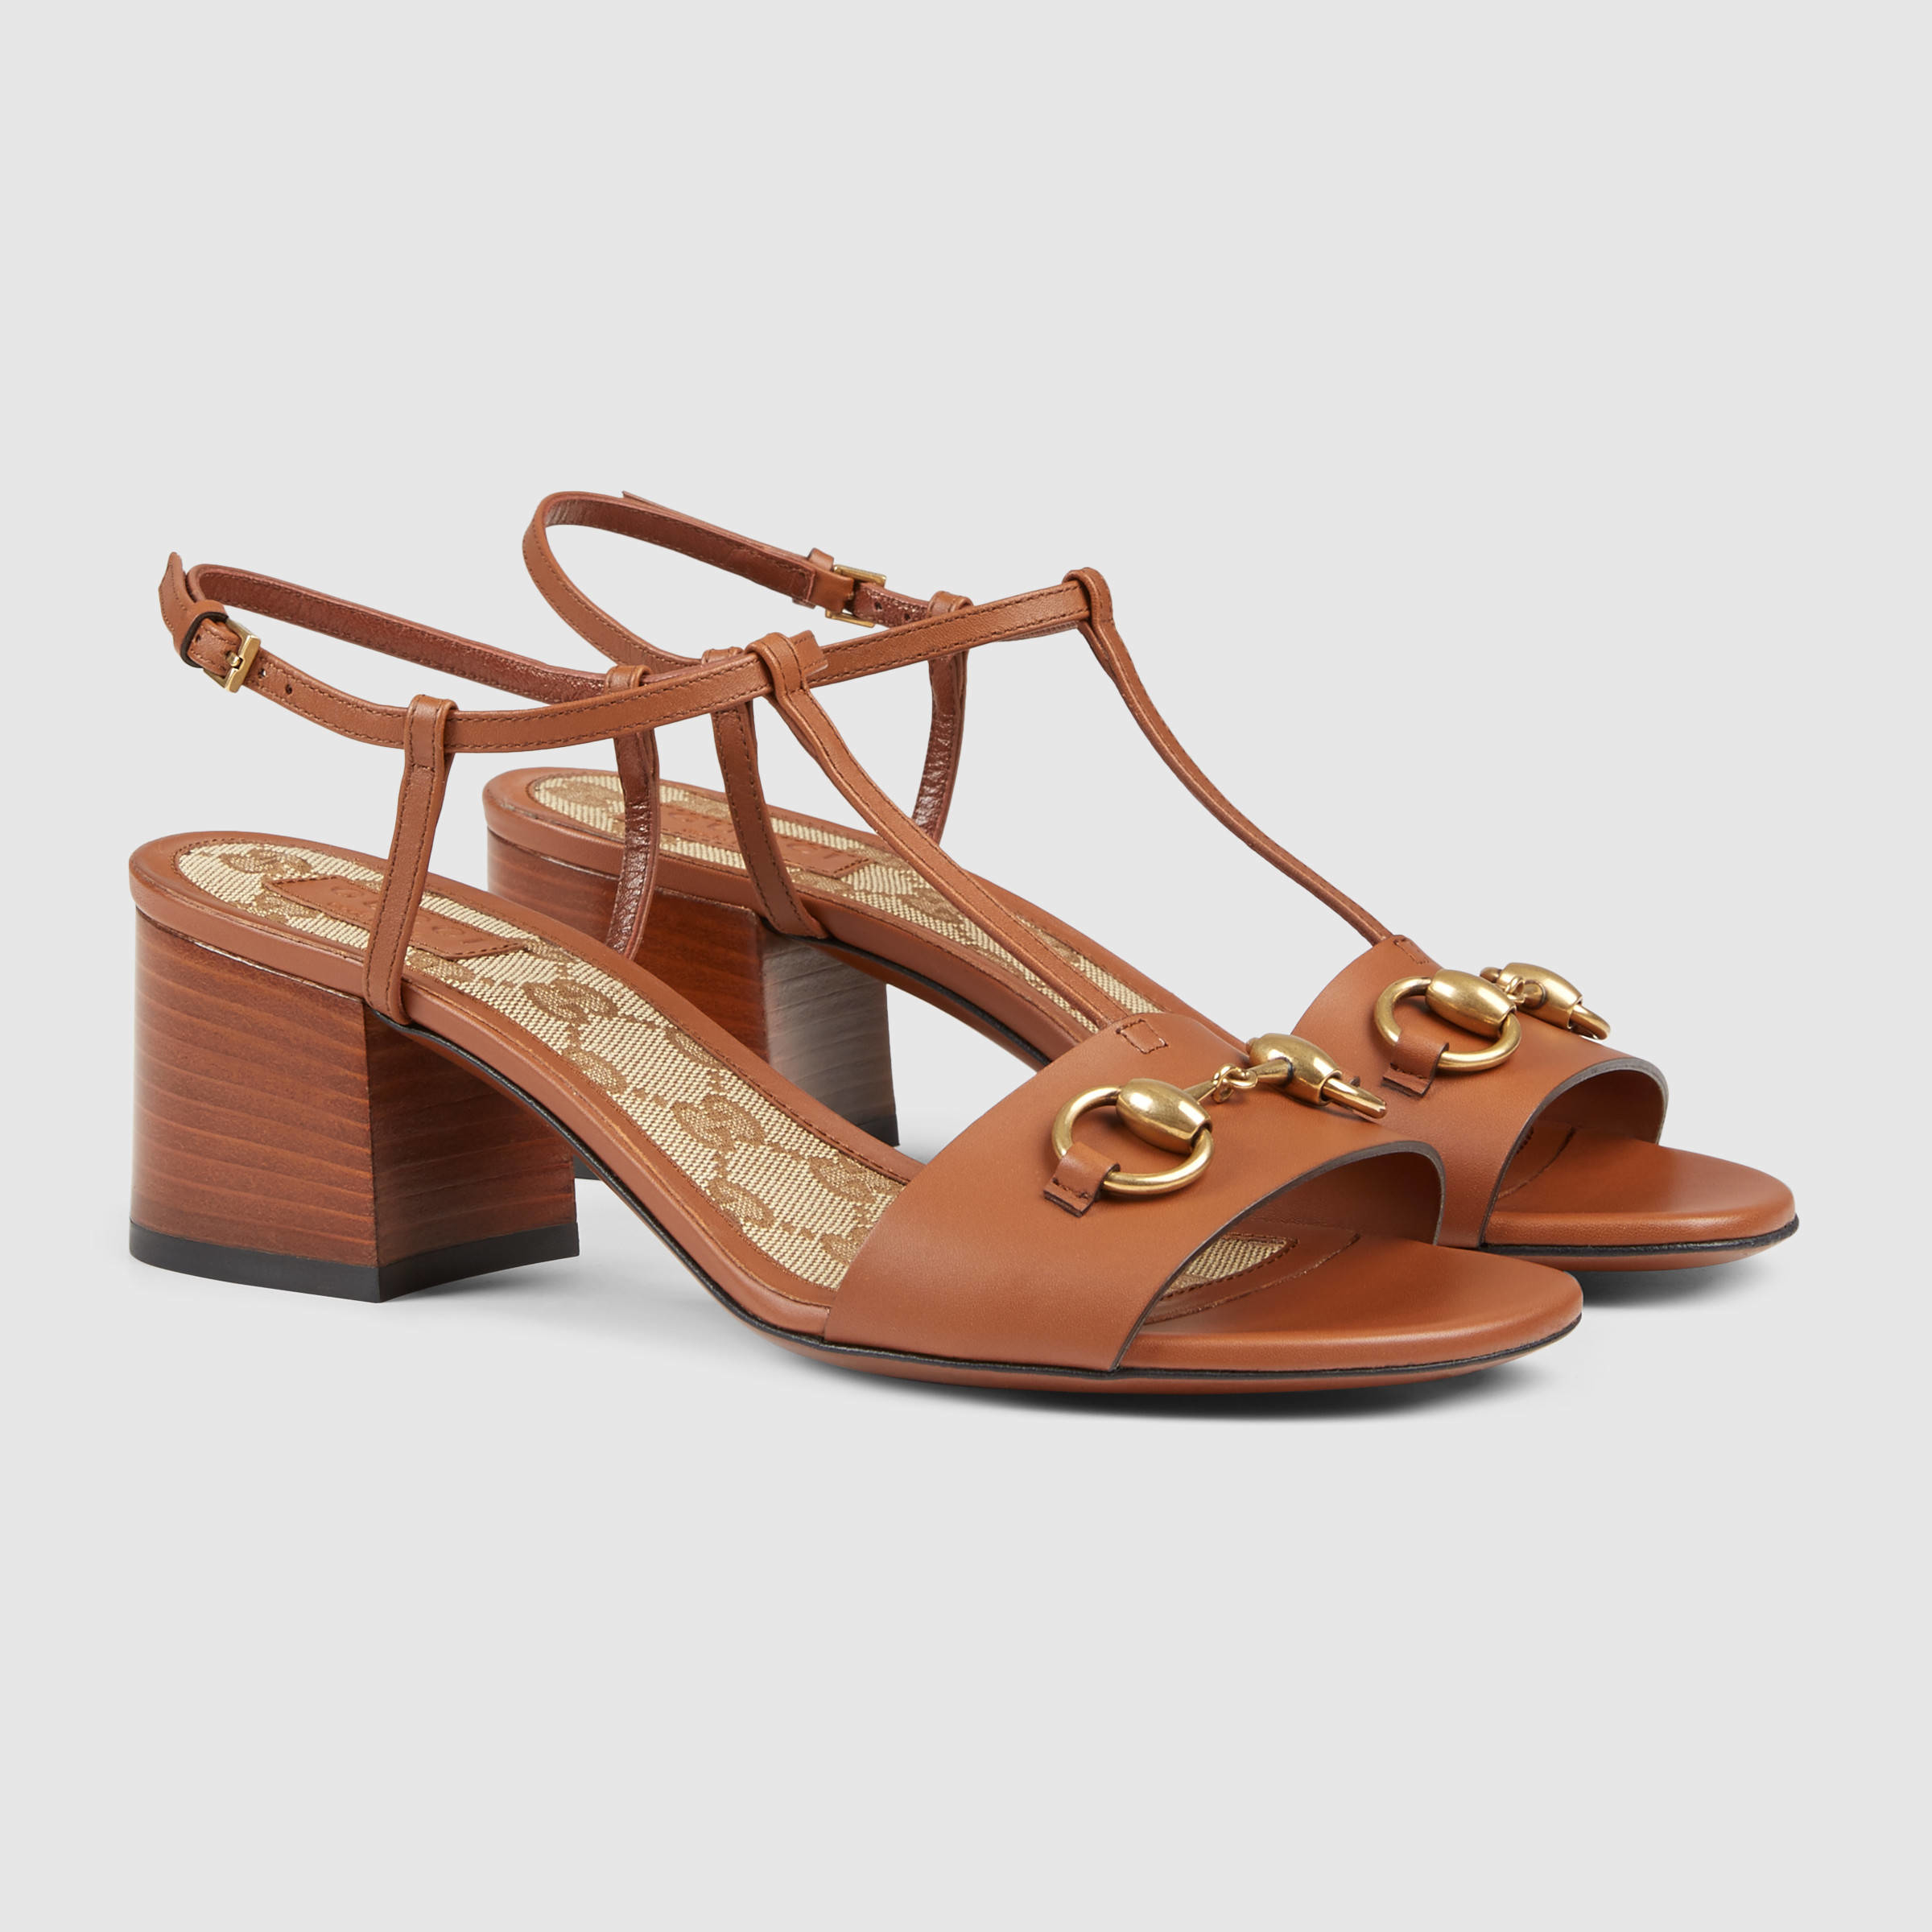 94ff8db6779 Lyst - Gucci Leather Mid-heel Sandal in Brown